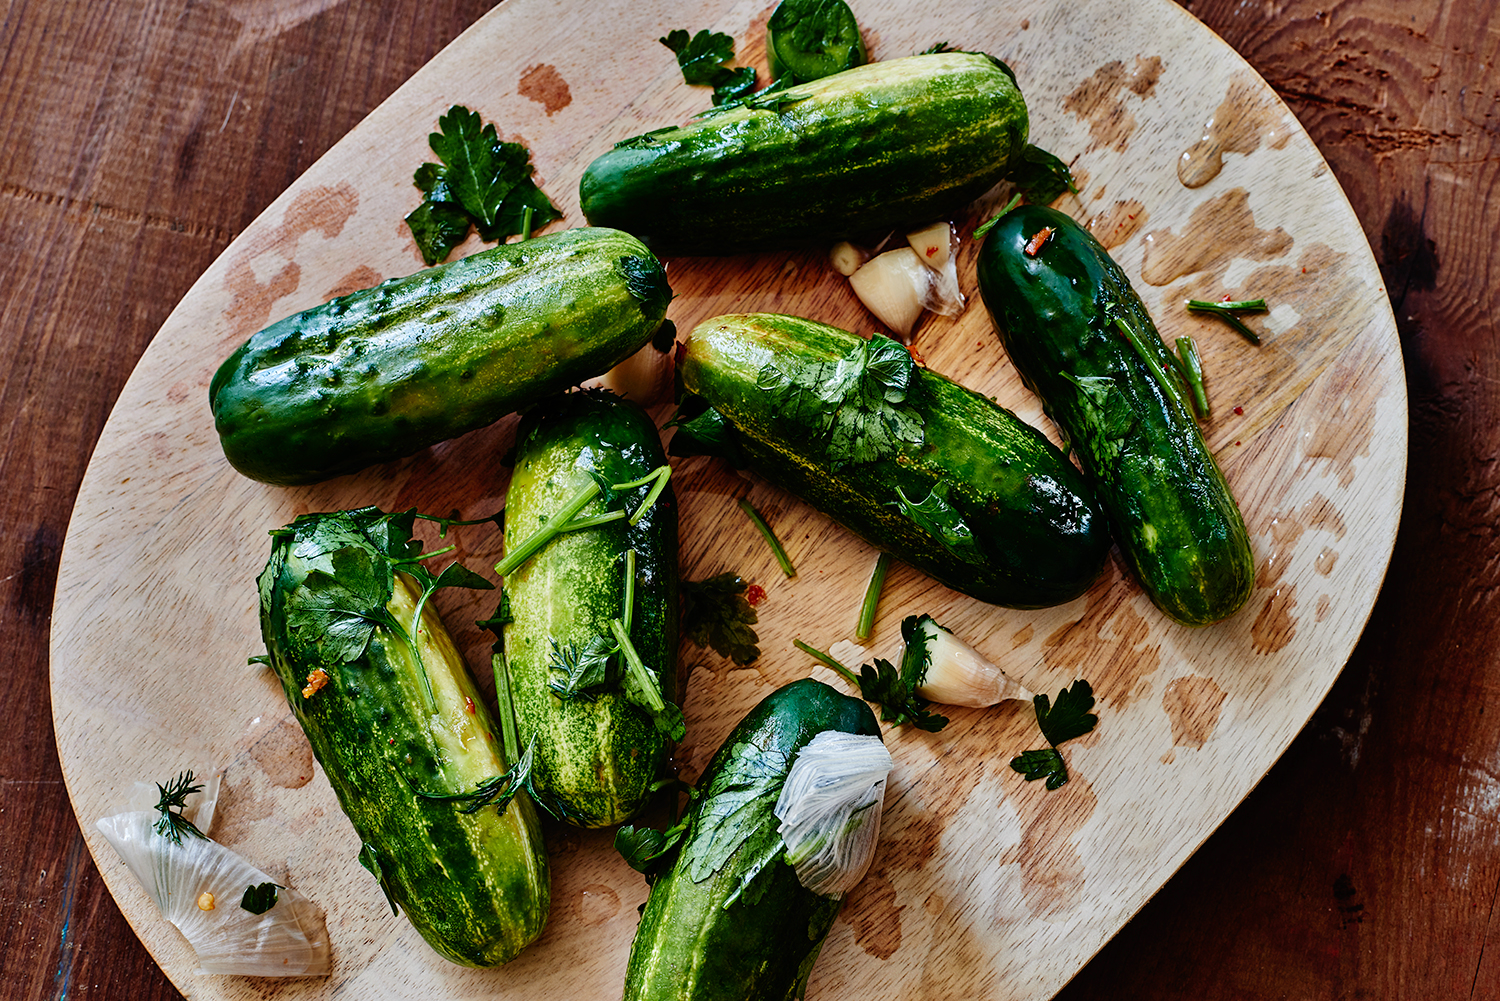 13_Pickles_0580_original.jpg